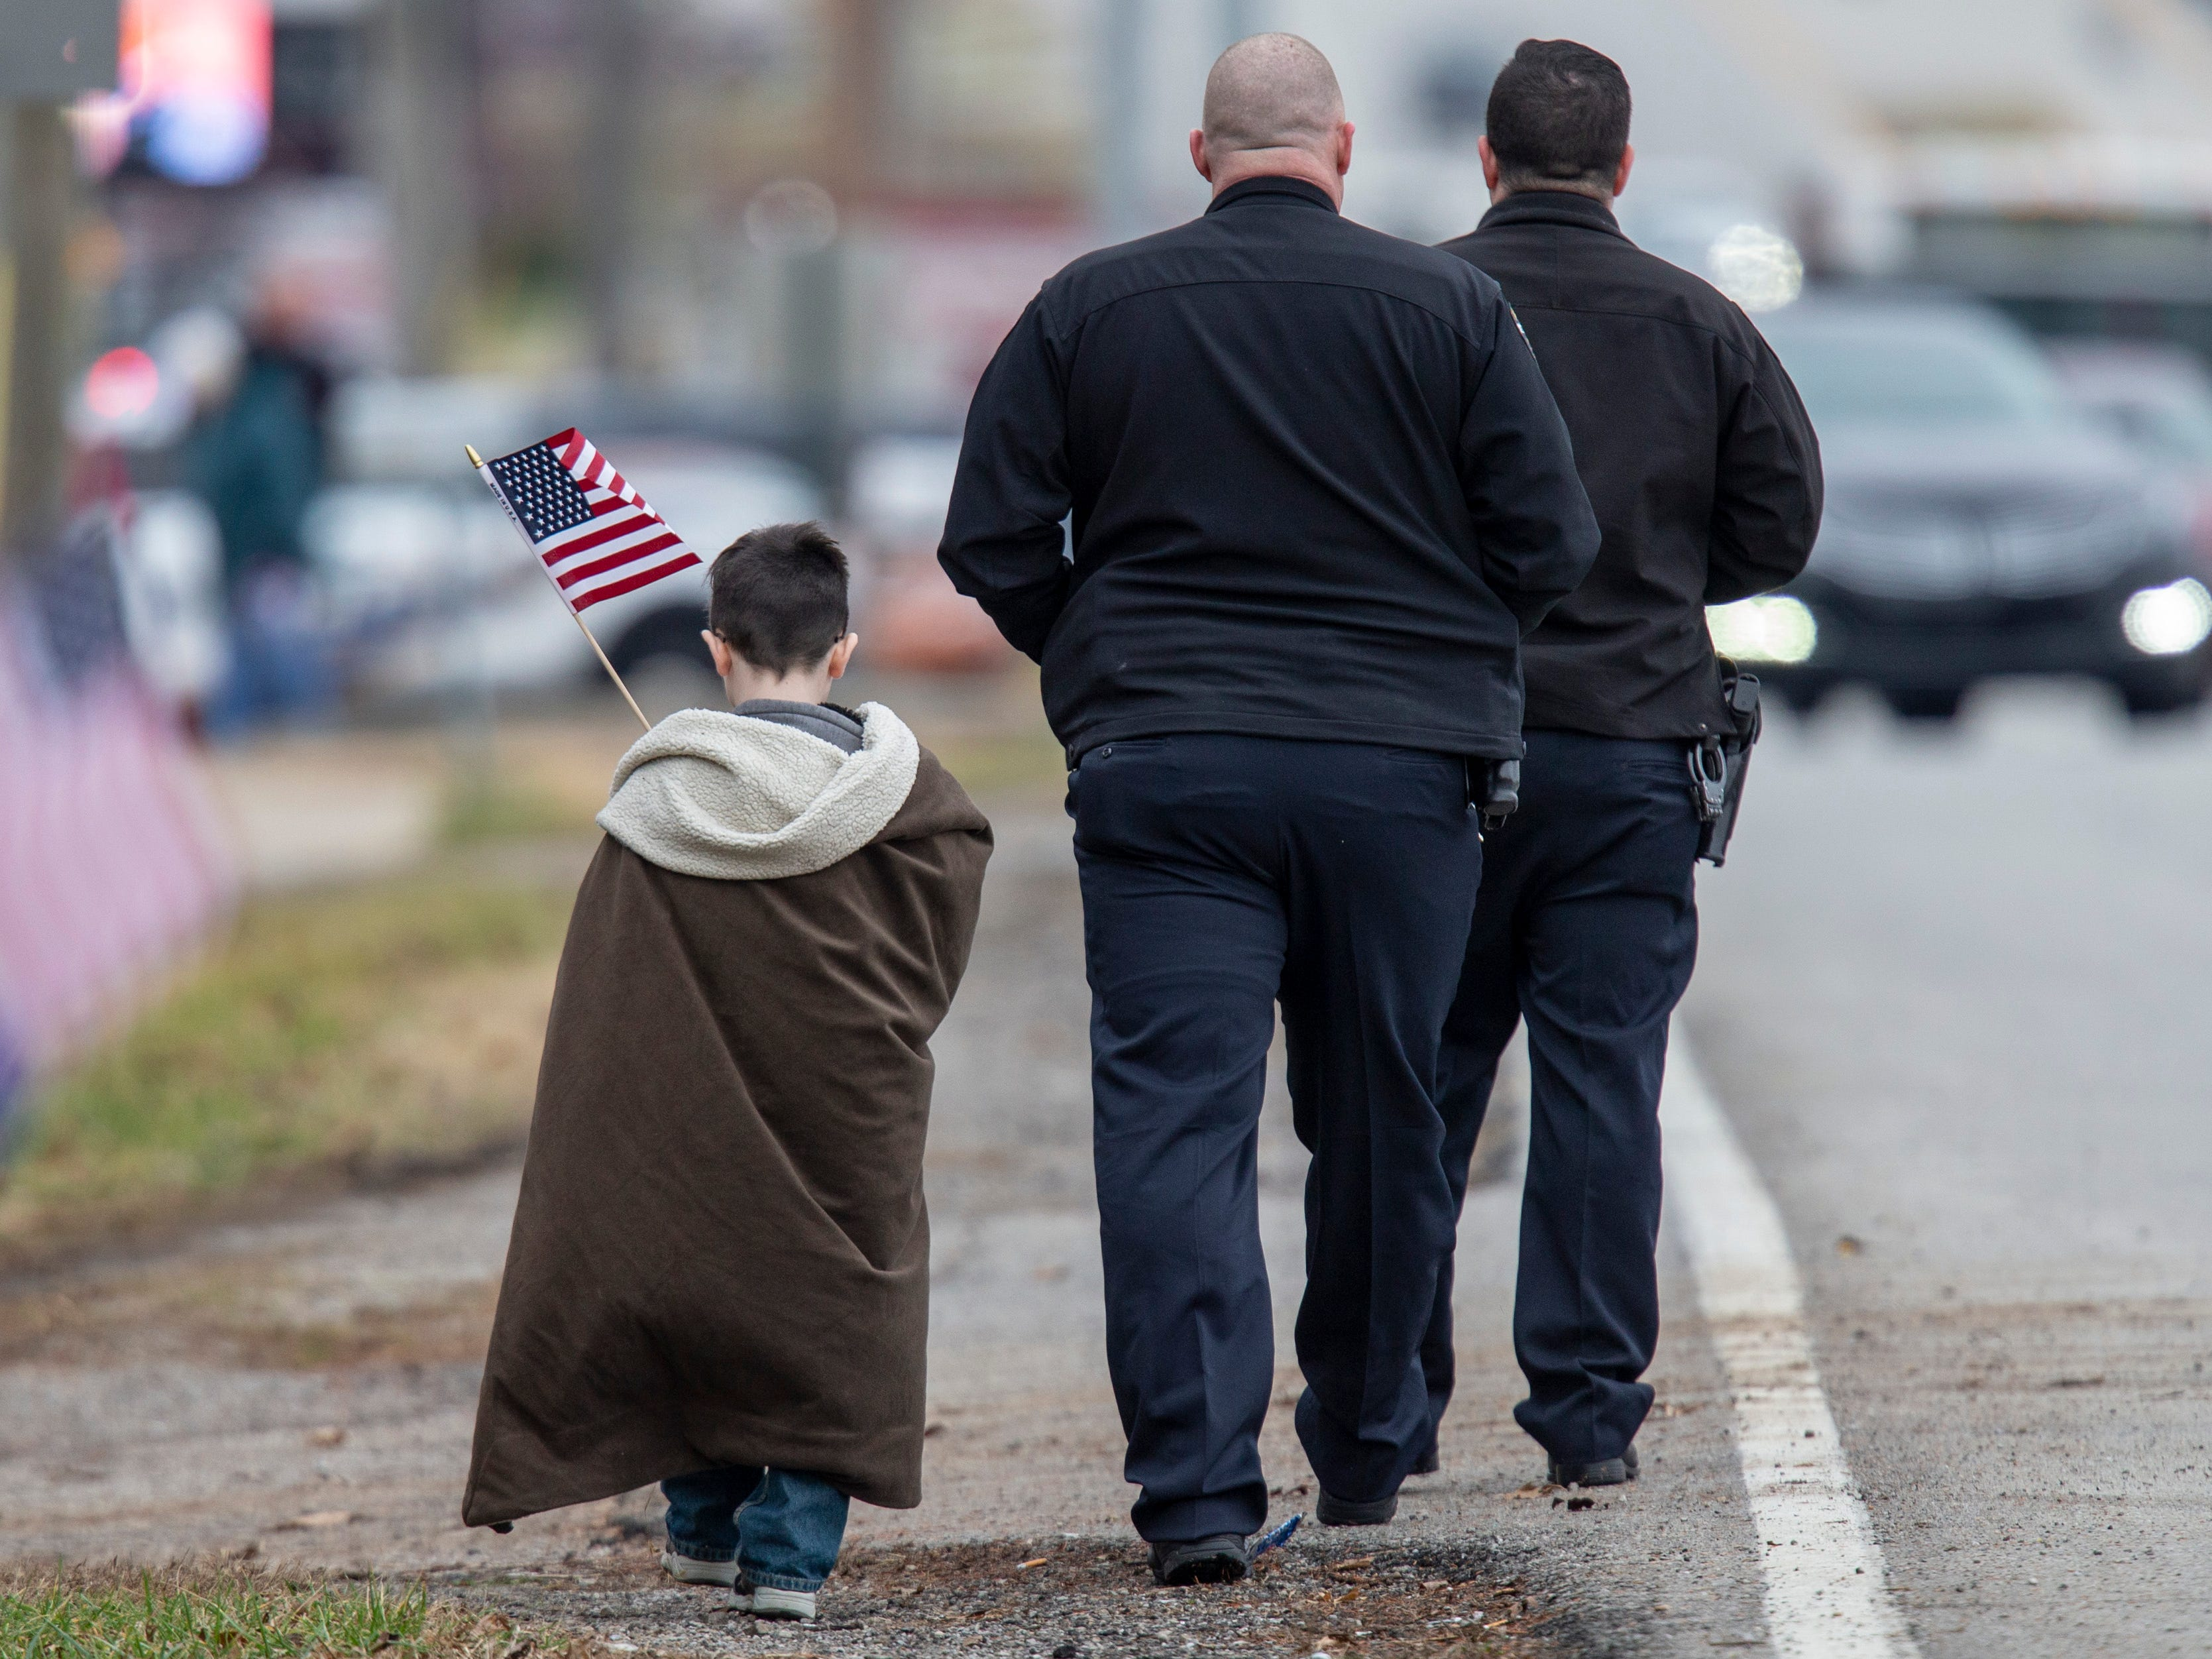 A young boy carries an American flag as he walks with two police officers following the procession for Det. Deidre Mengedoht on Saturday in Louisville, Ky.